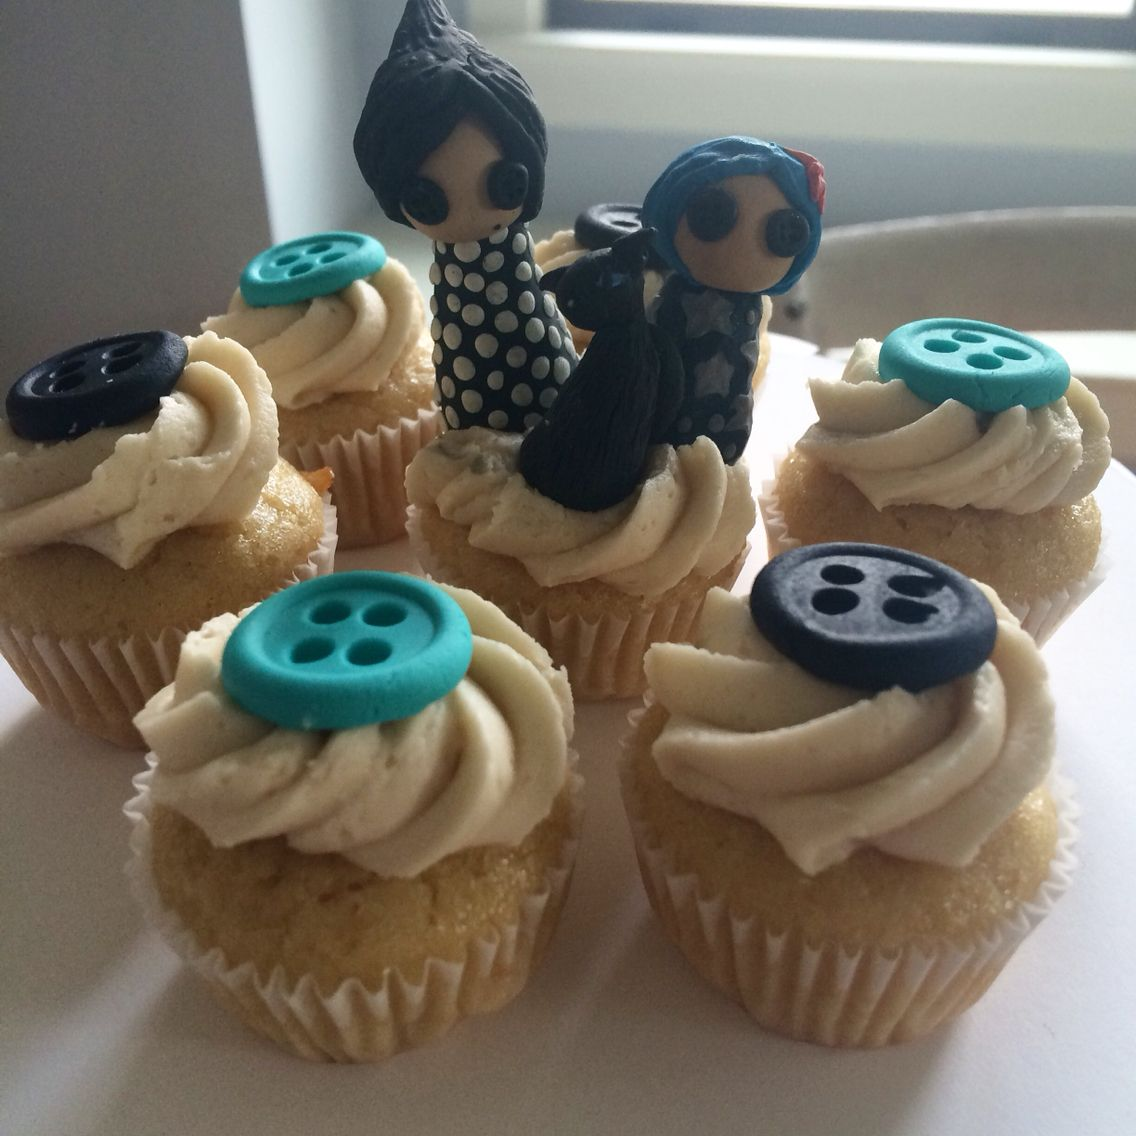 Cute As A Button Coraline Cupcakes With Topper Other Mother Coraline Cat Coraline Coraline Doll Coraline Jones